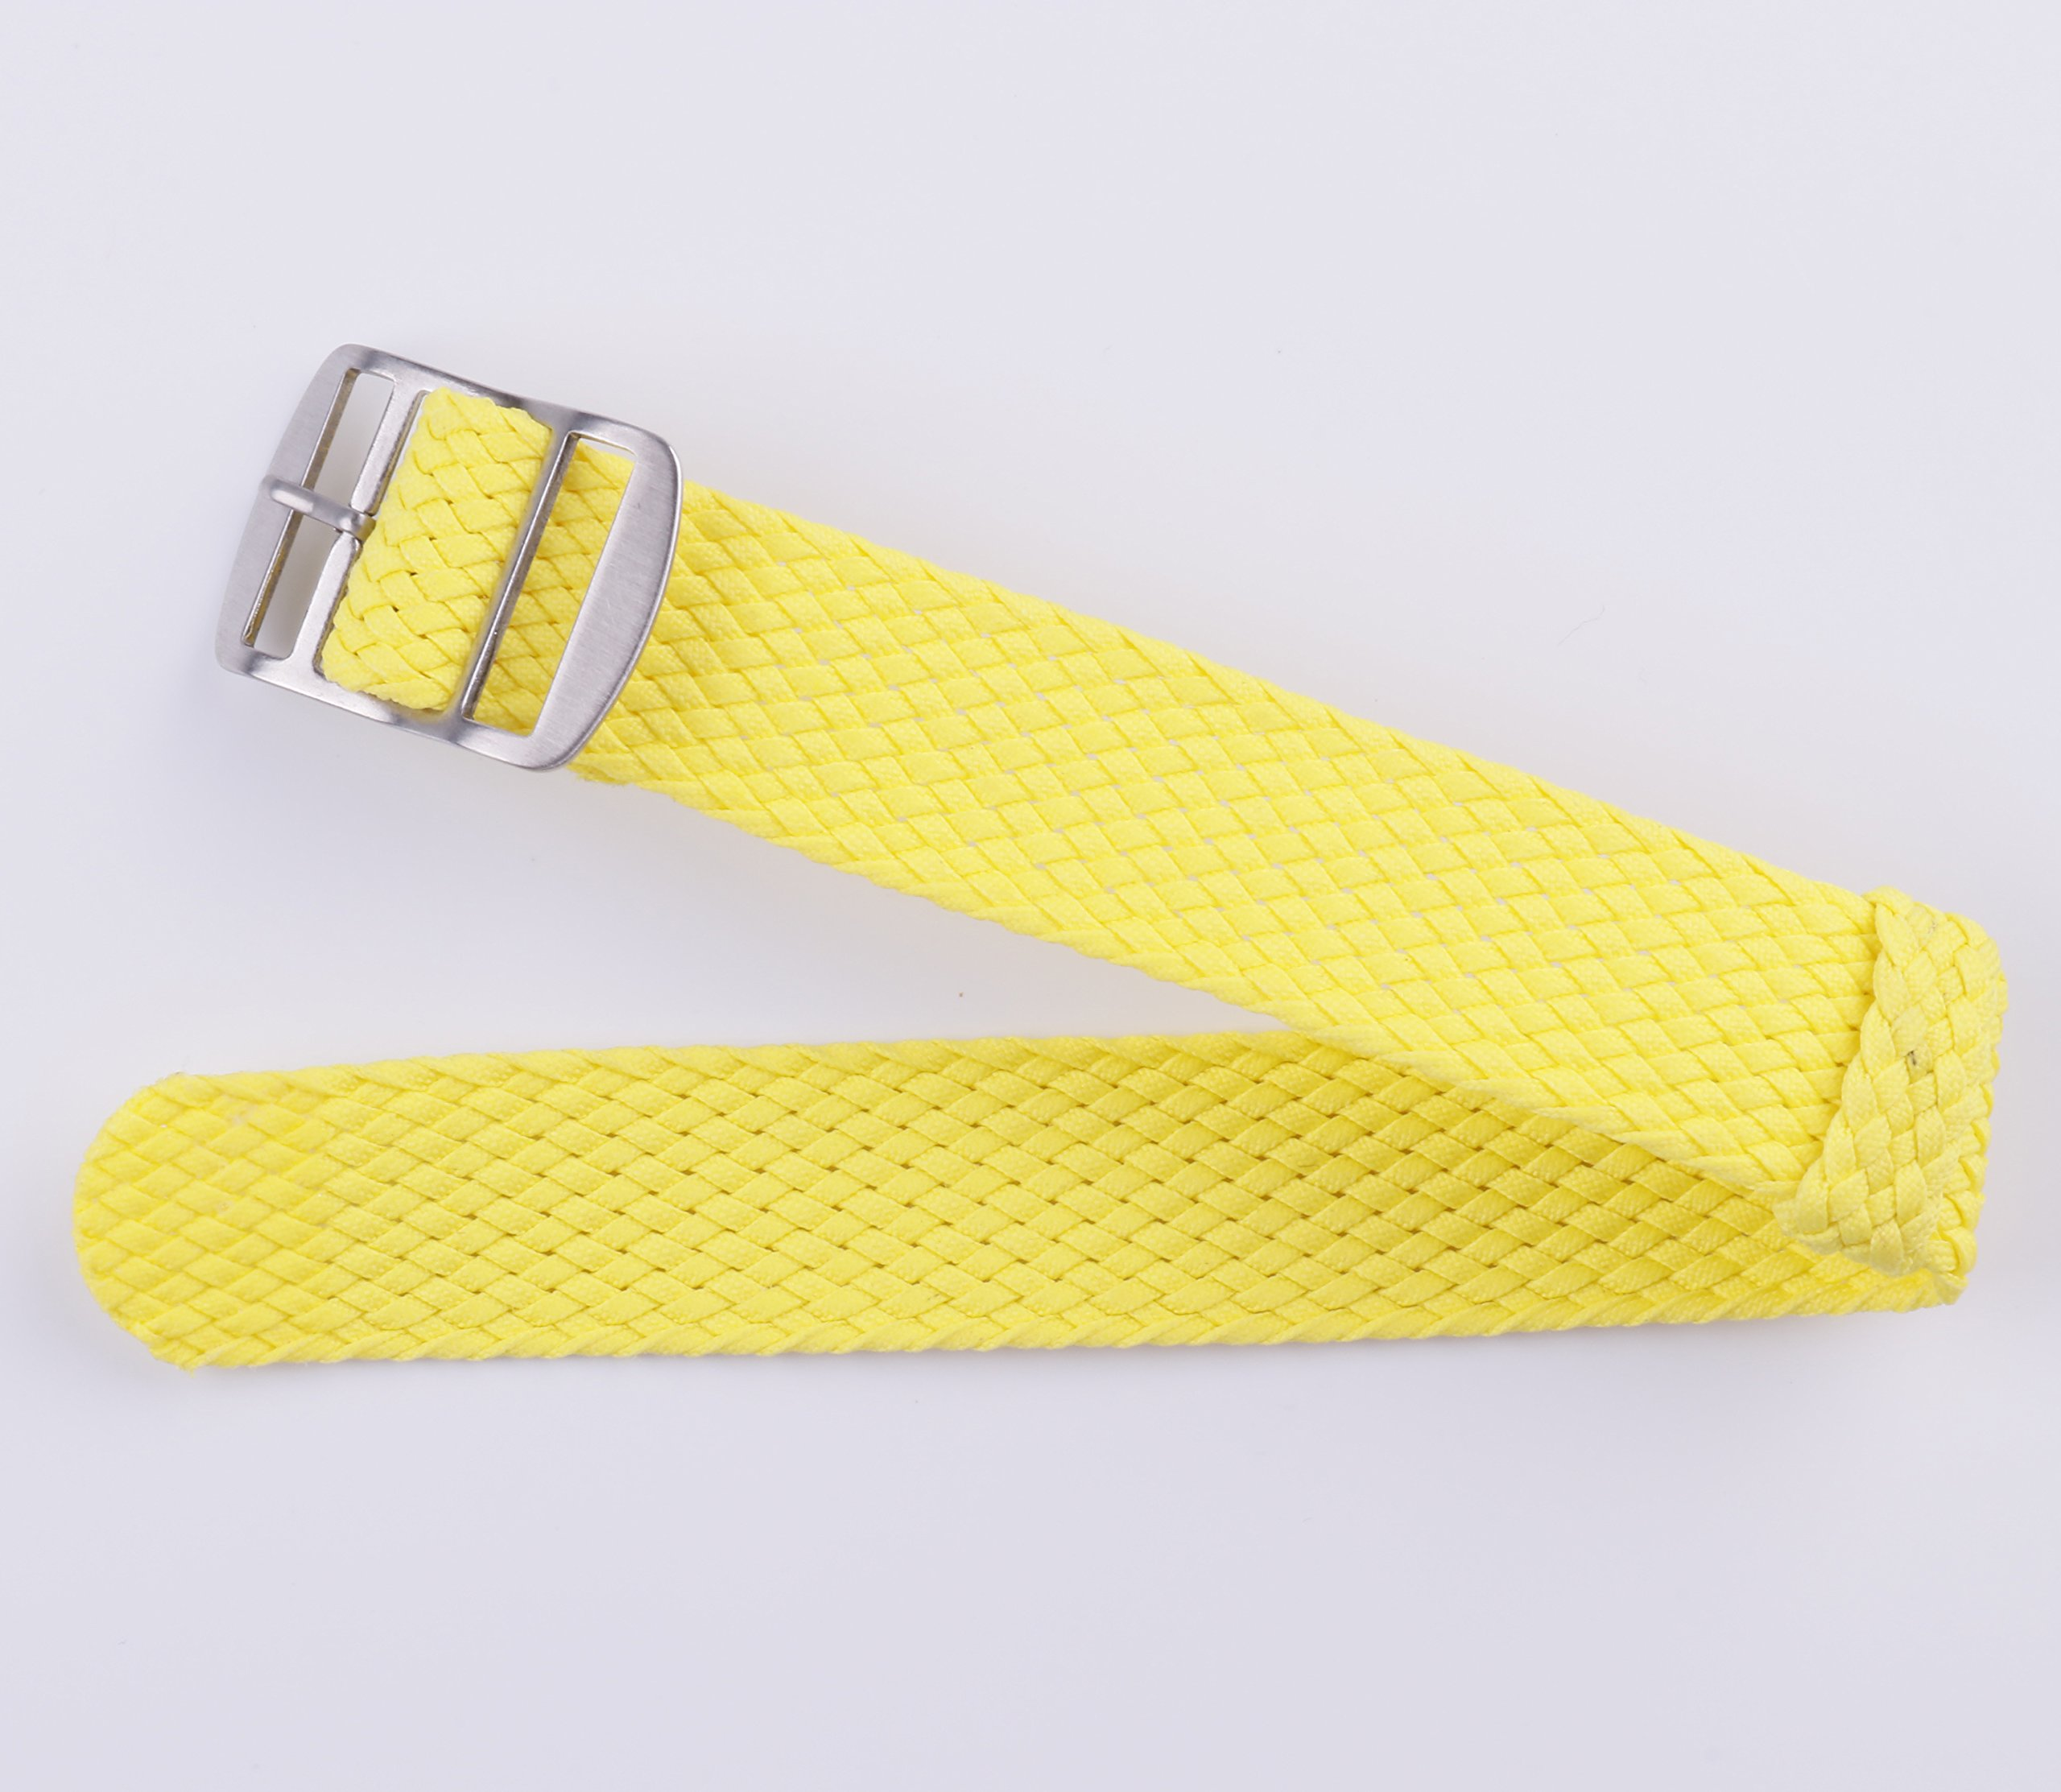 2pcs Nylon Watch Strap Perlon Braided Woven Replacement Watch Band Men Women 14mm 16mm 18mm 20mm 22mm Red by BONSTRAP (Image #4)